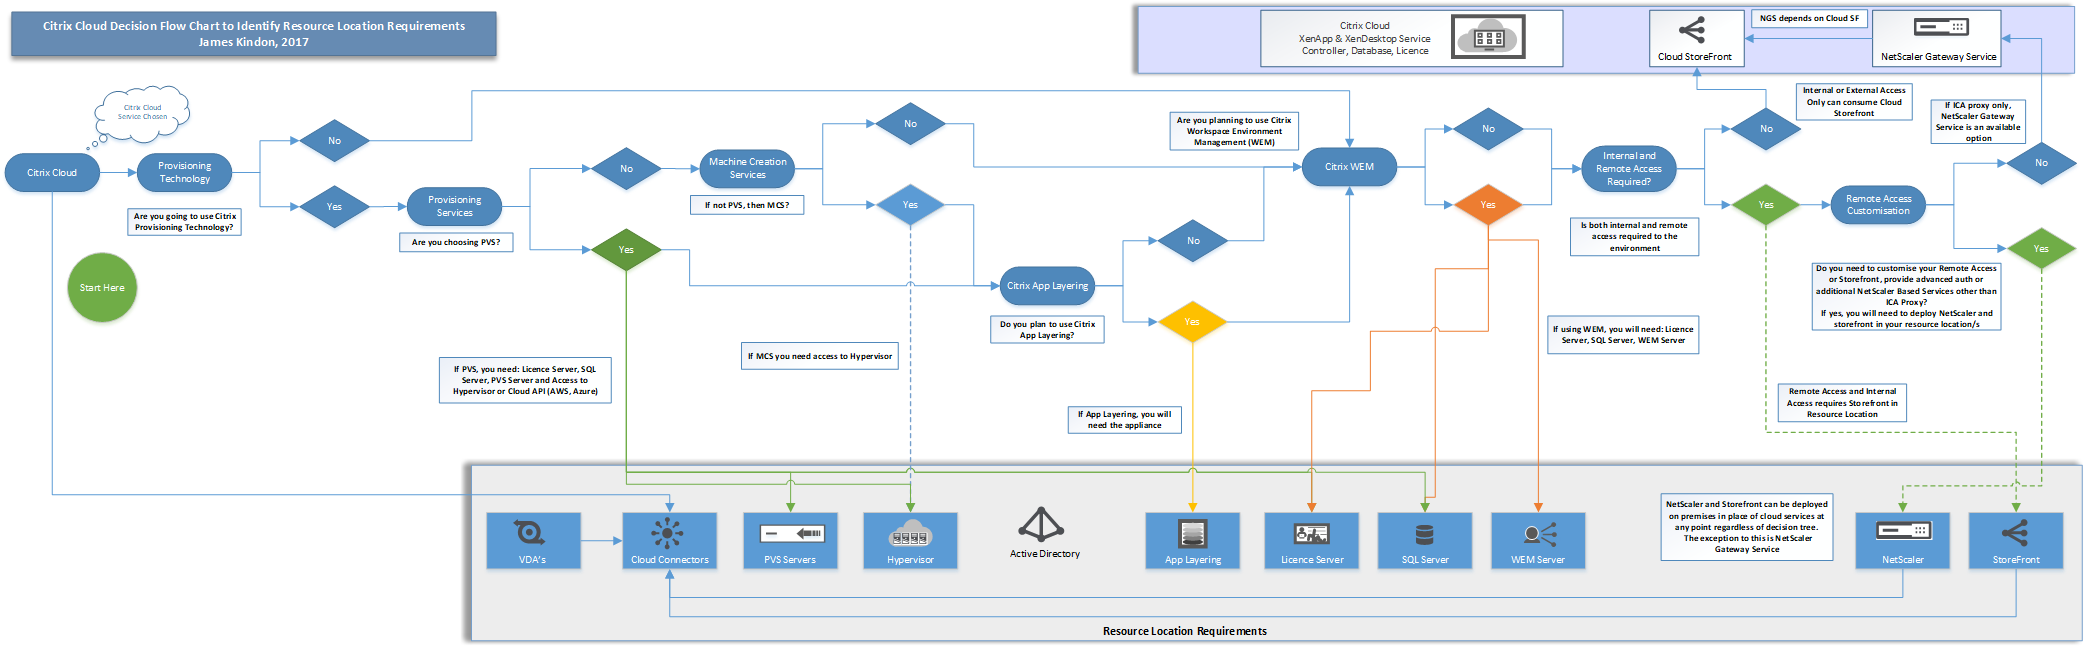 Citrix cloud resource location requirements decision flow chart citrix cloud resource location requirements decision flow chart james kindon nvjuhfo Choice Image